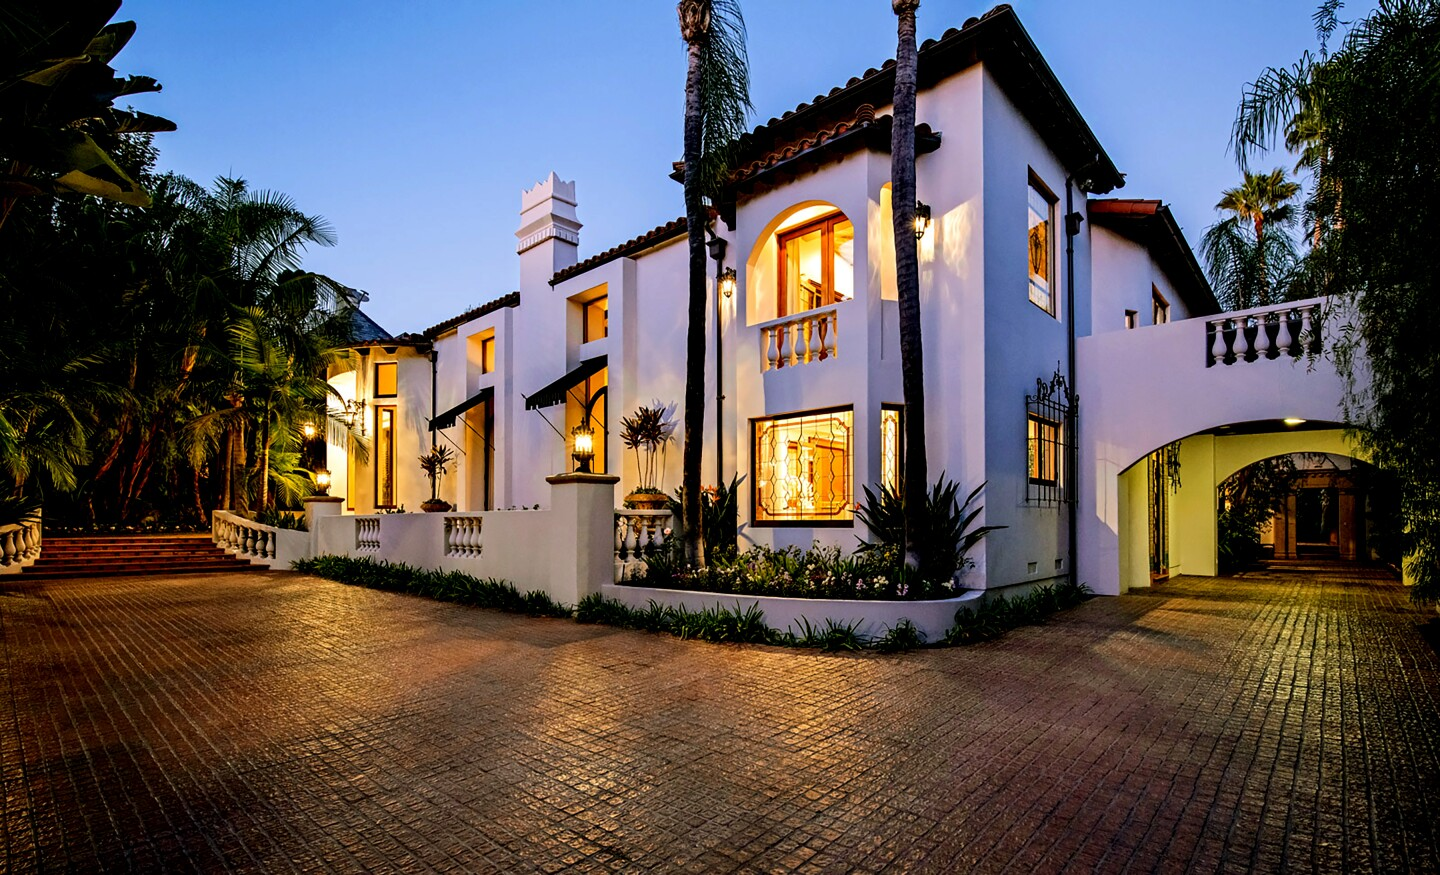 The Wallace Neff-designed house in the flats of Beverly Hills sits on more than a third of an acre surrounded by lush landscaping. Listed for $15.75 million, the Spanish Colonial Revival-style house showcases spectacular original woodwork and bright tile risers. Two kitchens and a screening room are among updates made to the house, which has six bedrooms and nine bathrooms. In the living room, arched French doors bookend a dramatic wall fireplace, while hand-stenciled beams top the space.